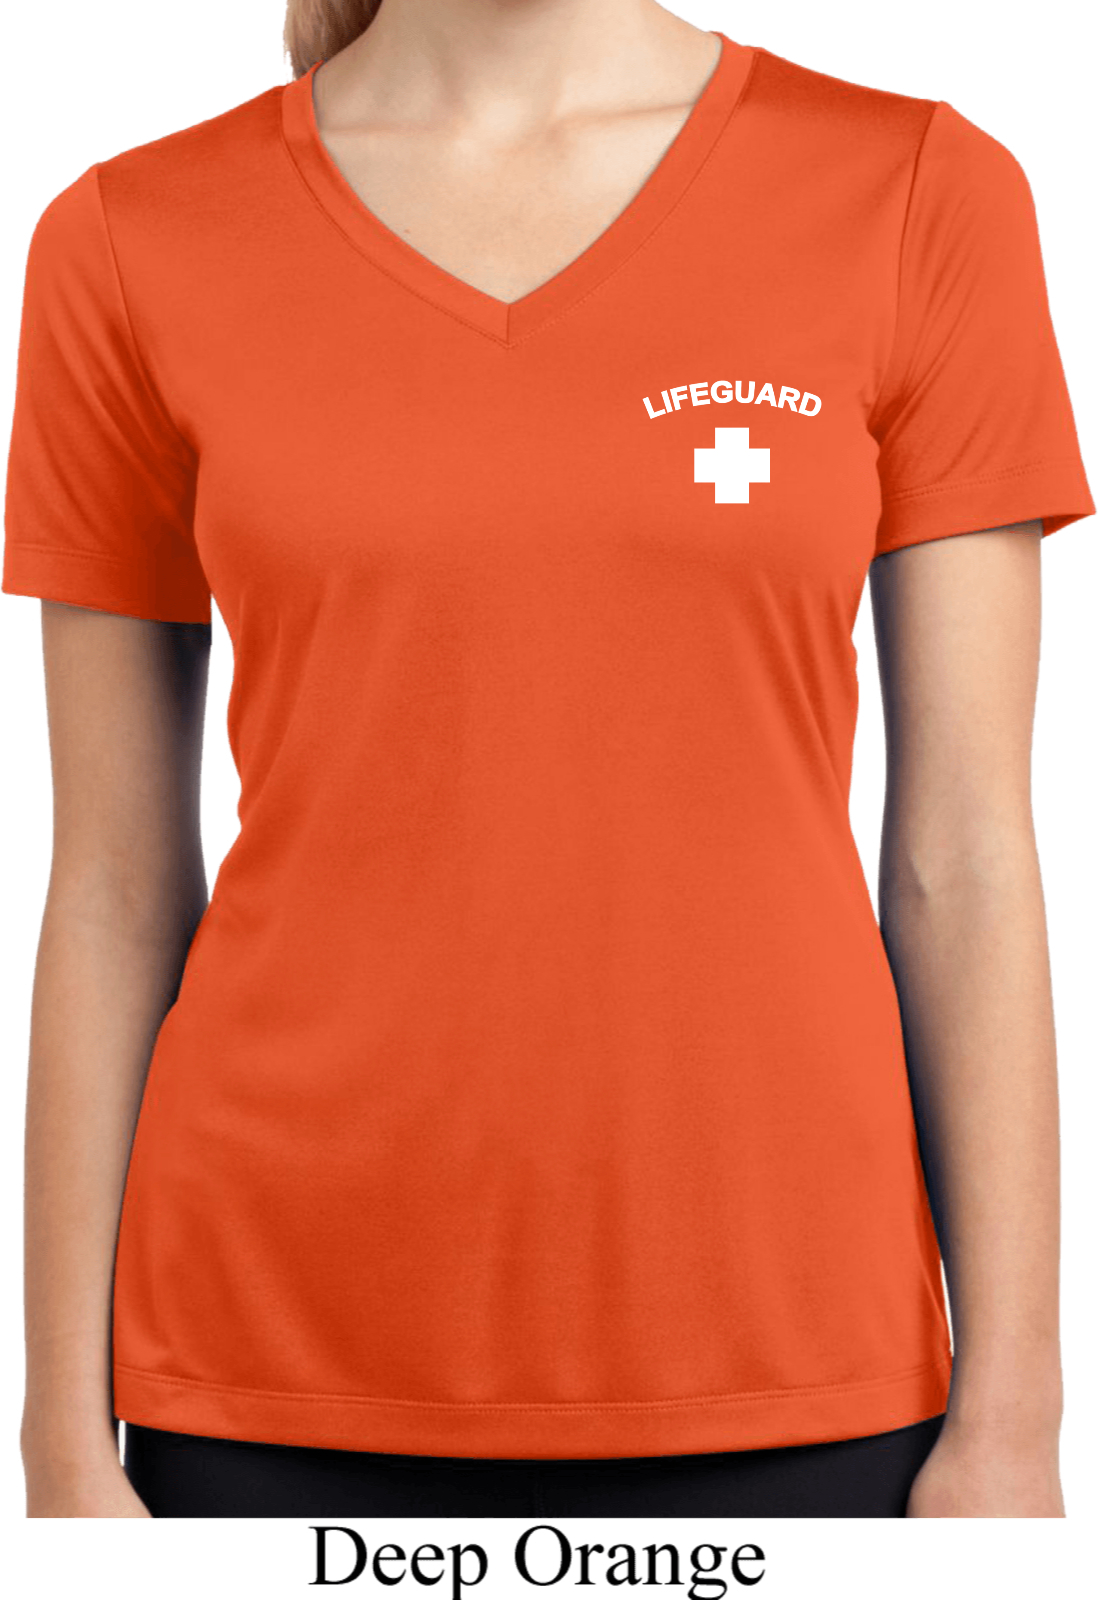 Lifeguard Pocket Print Ladies Moisture Wicking V Neck